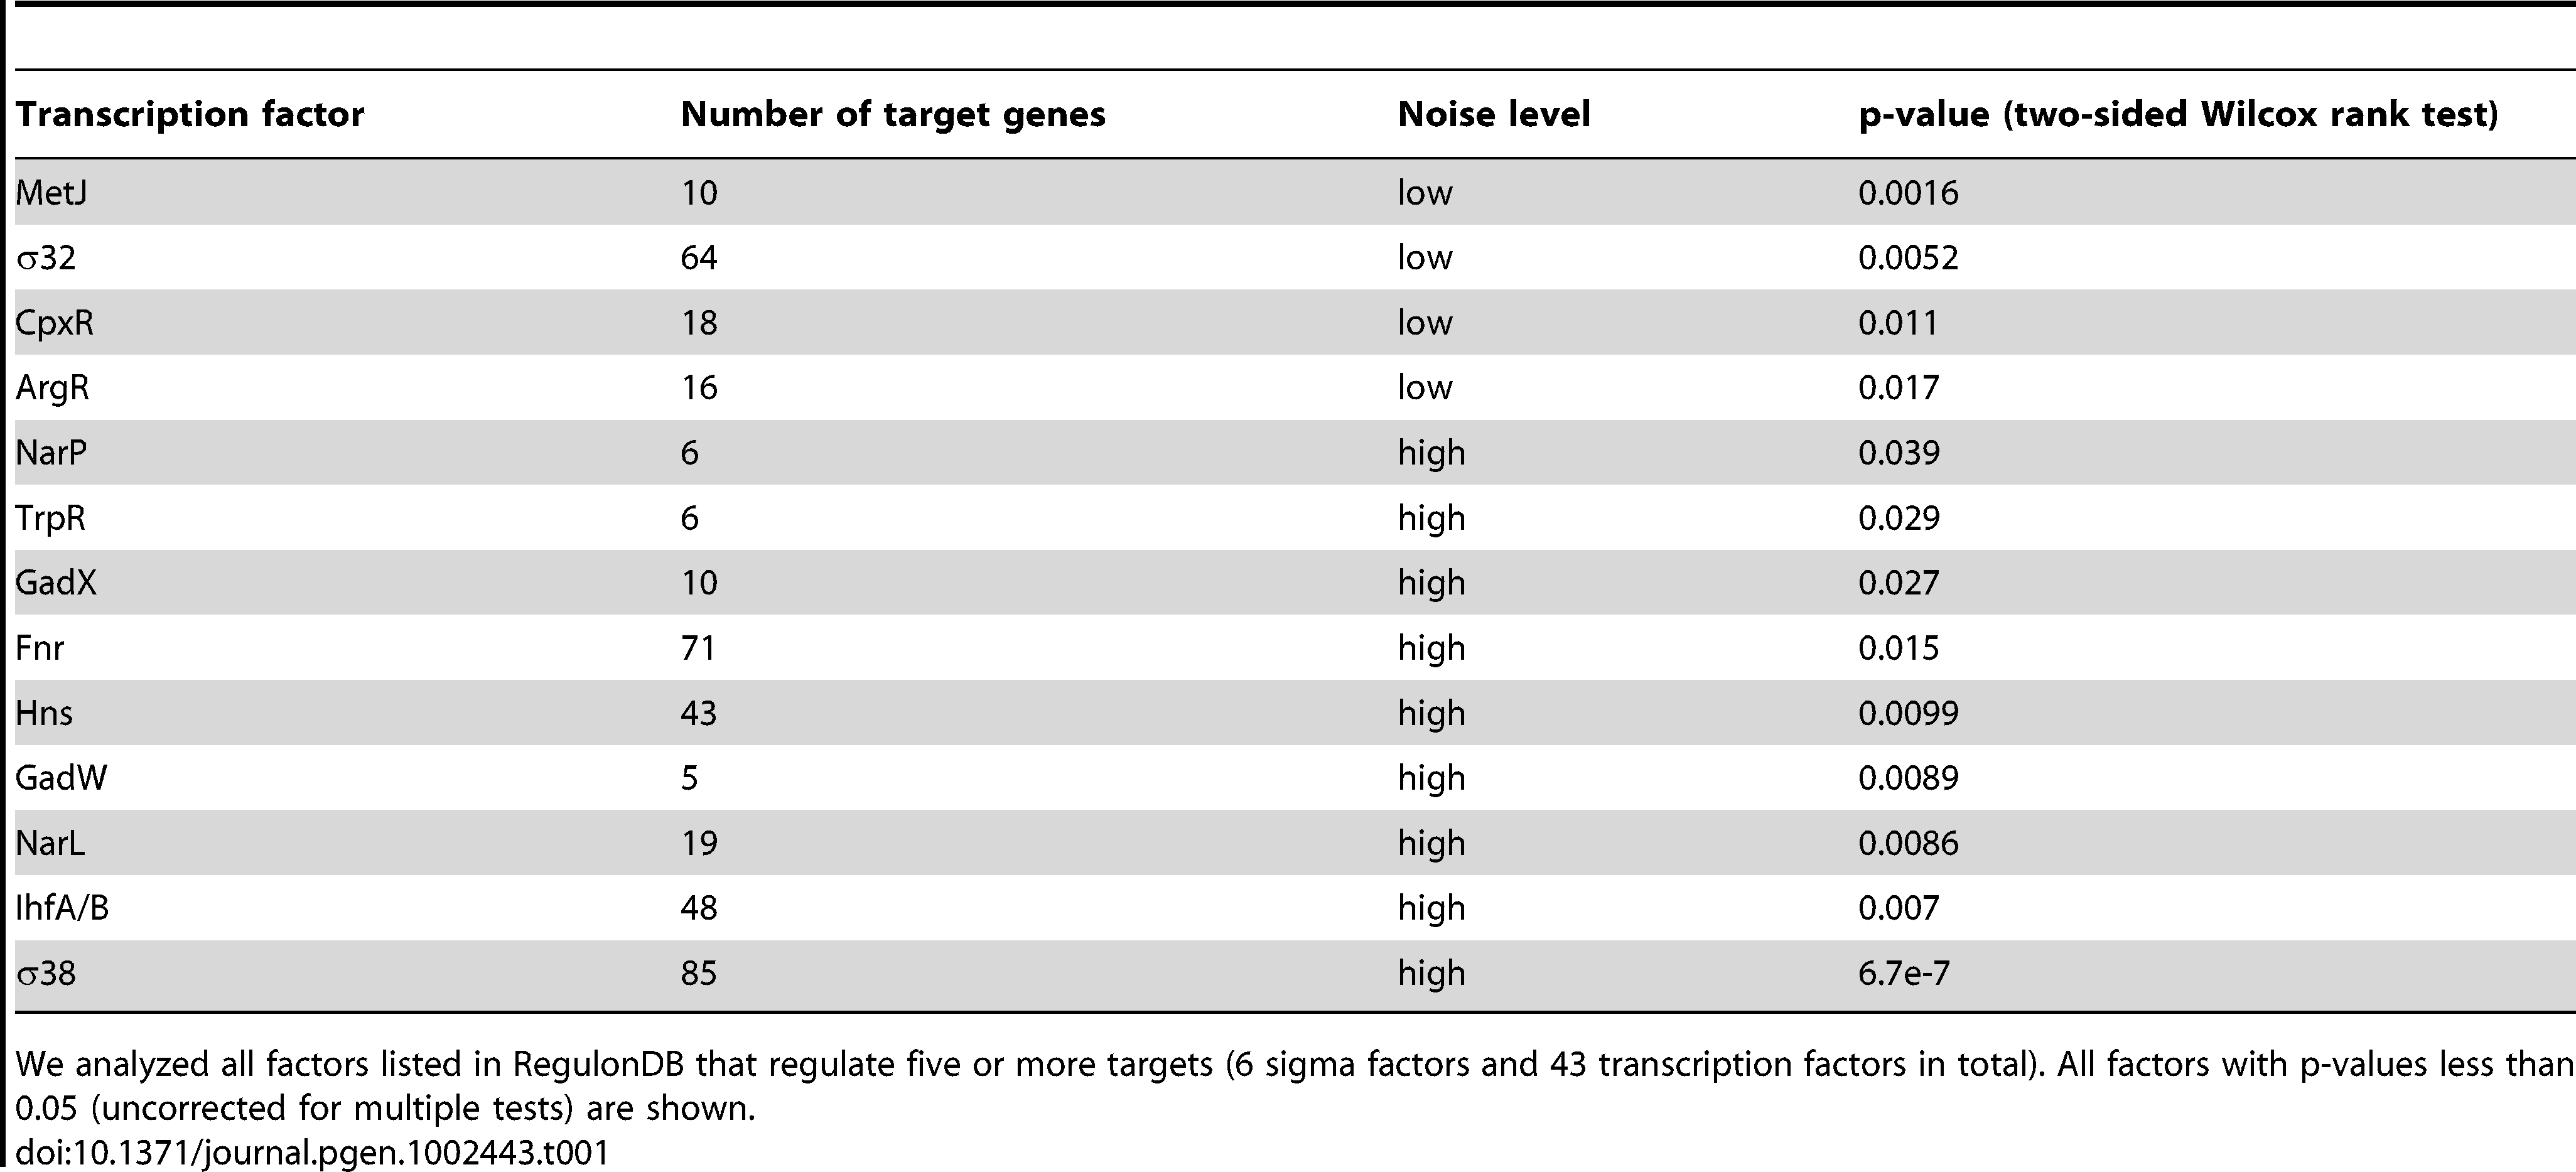 Sigma factors and transcription factors associated with genes exhibiting low or high levels of expression noise.